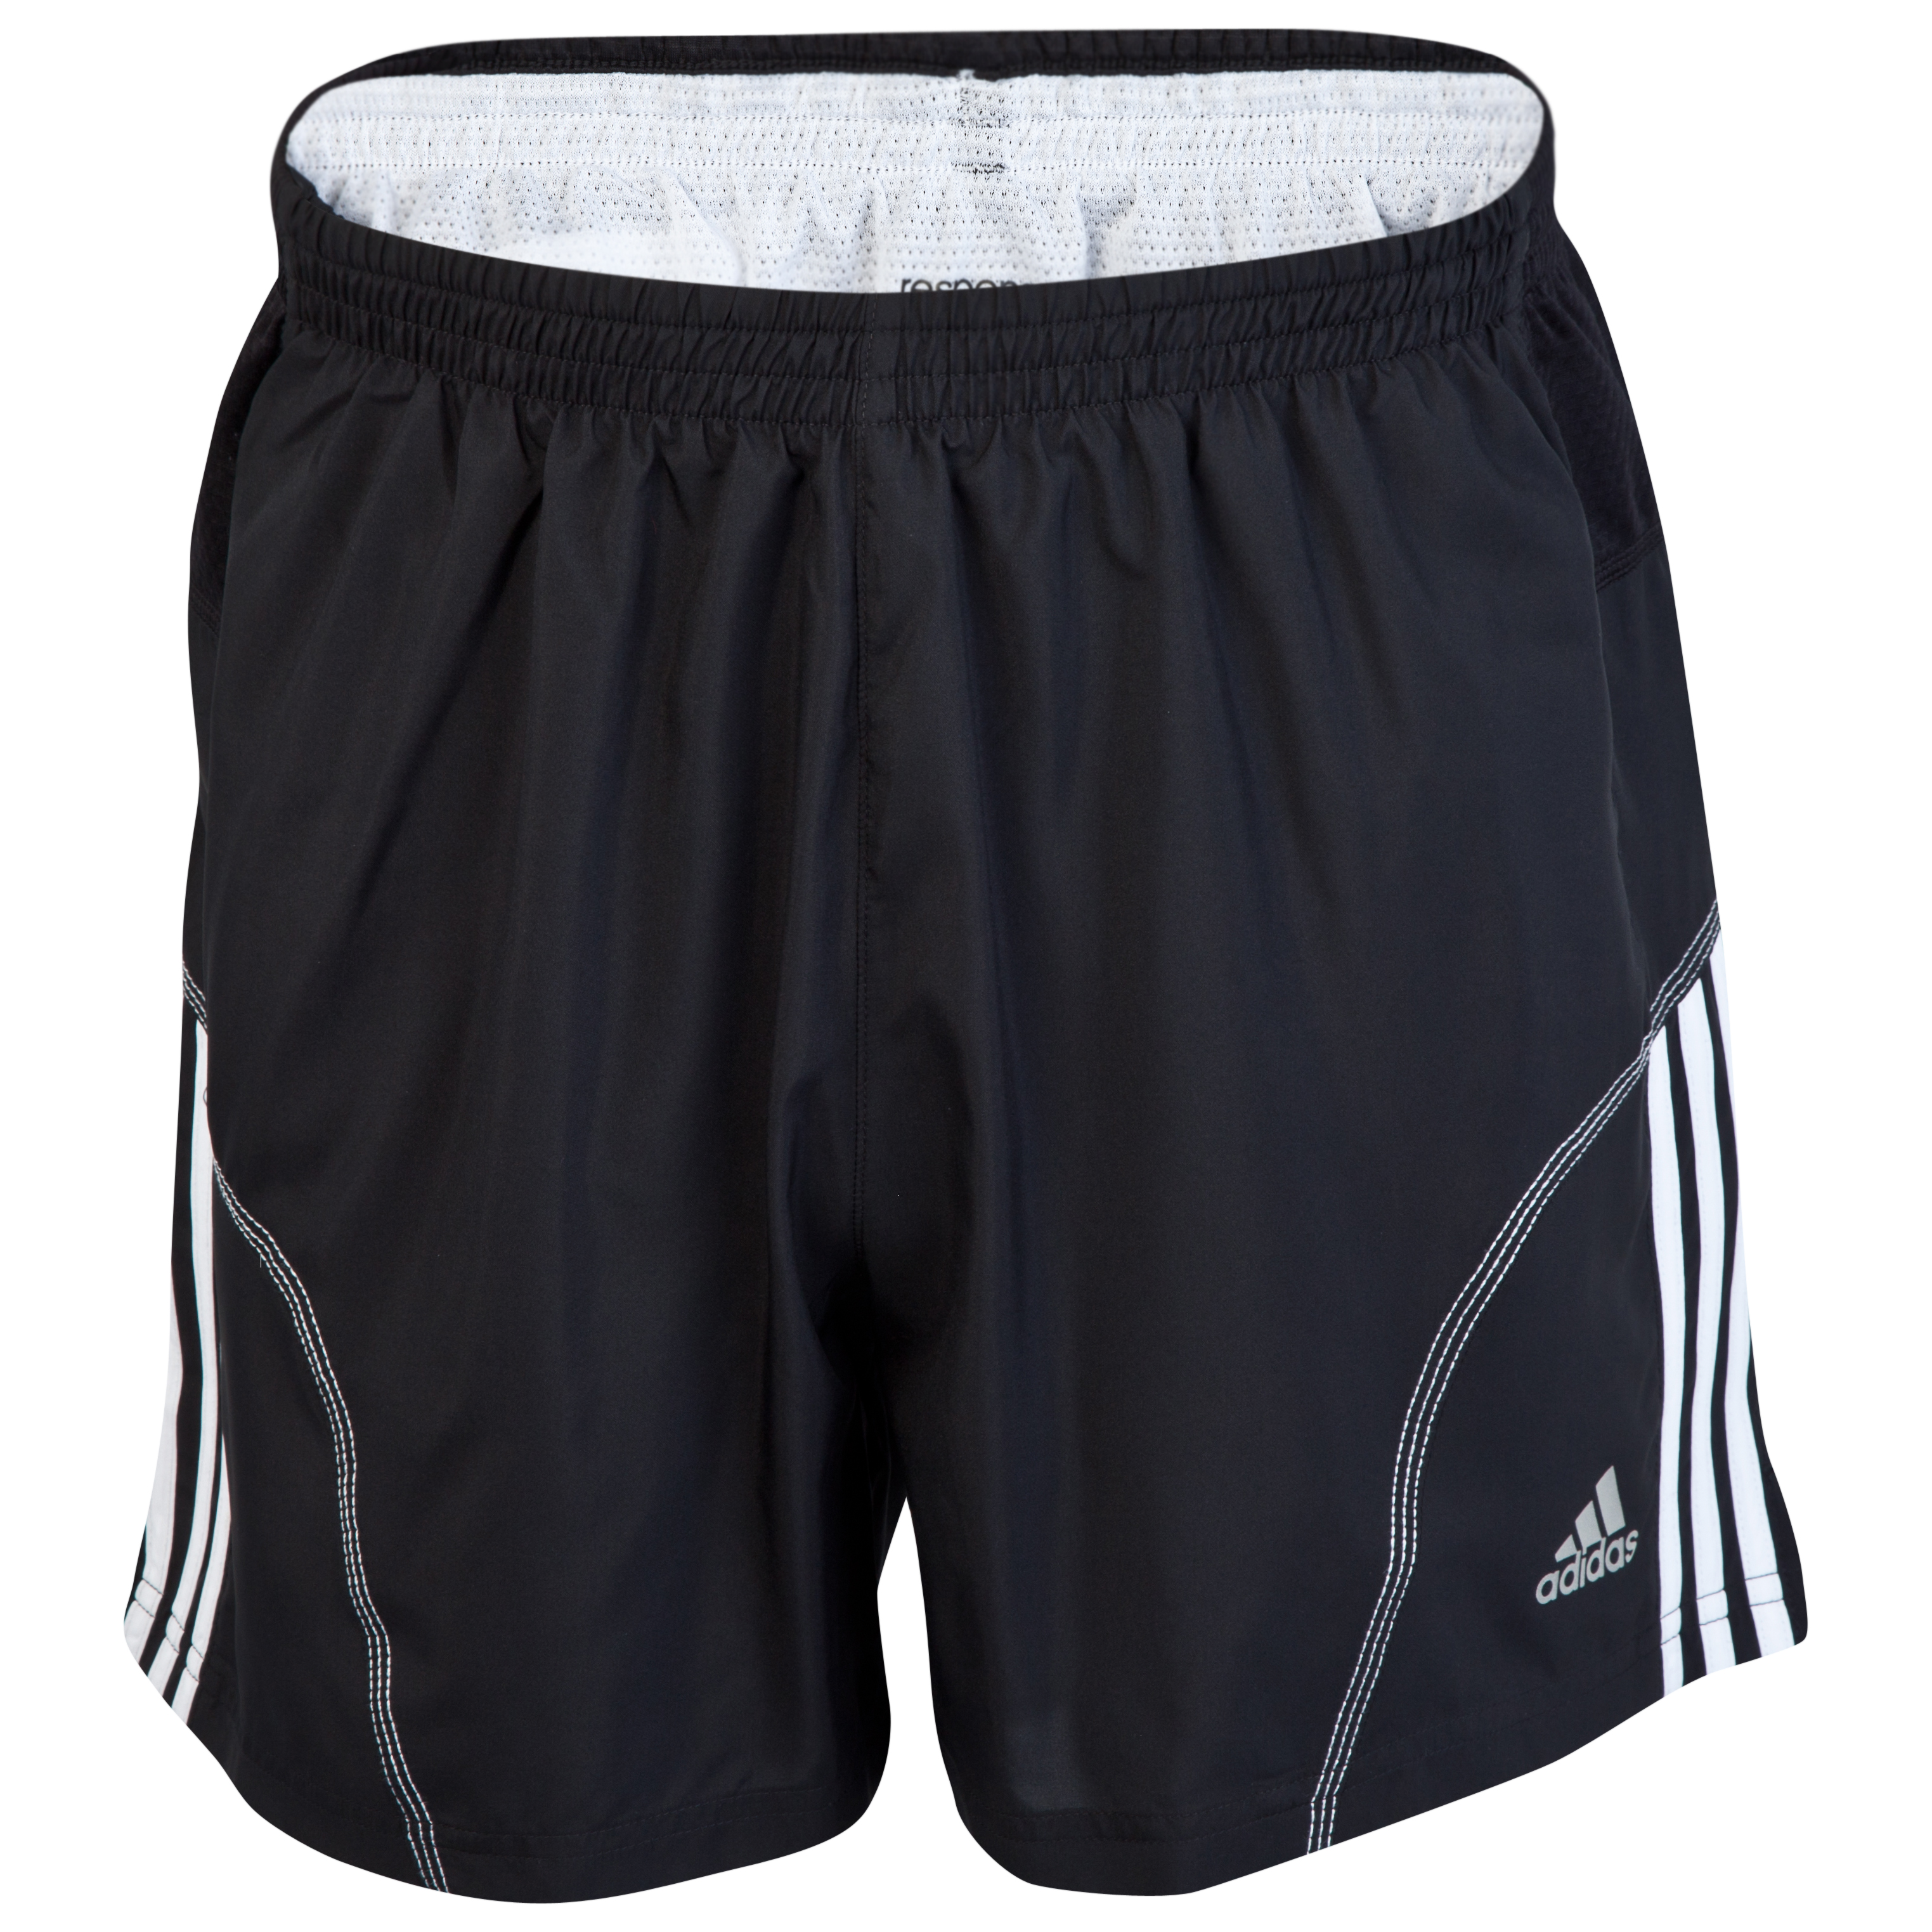 Adidas Response DS 5 Inch Shorts - Black/White